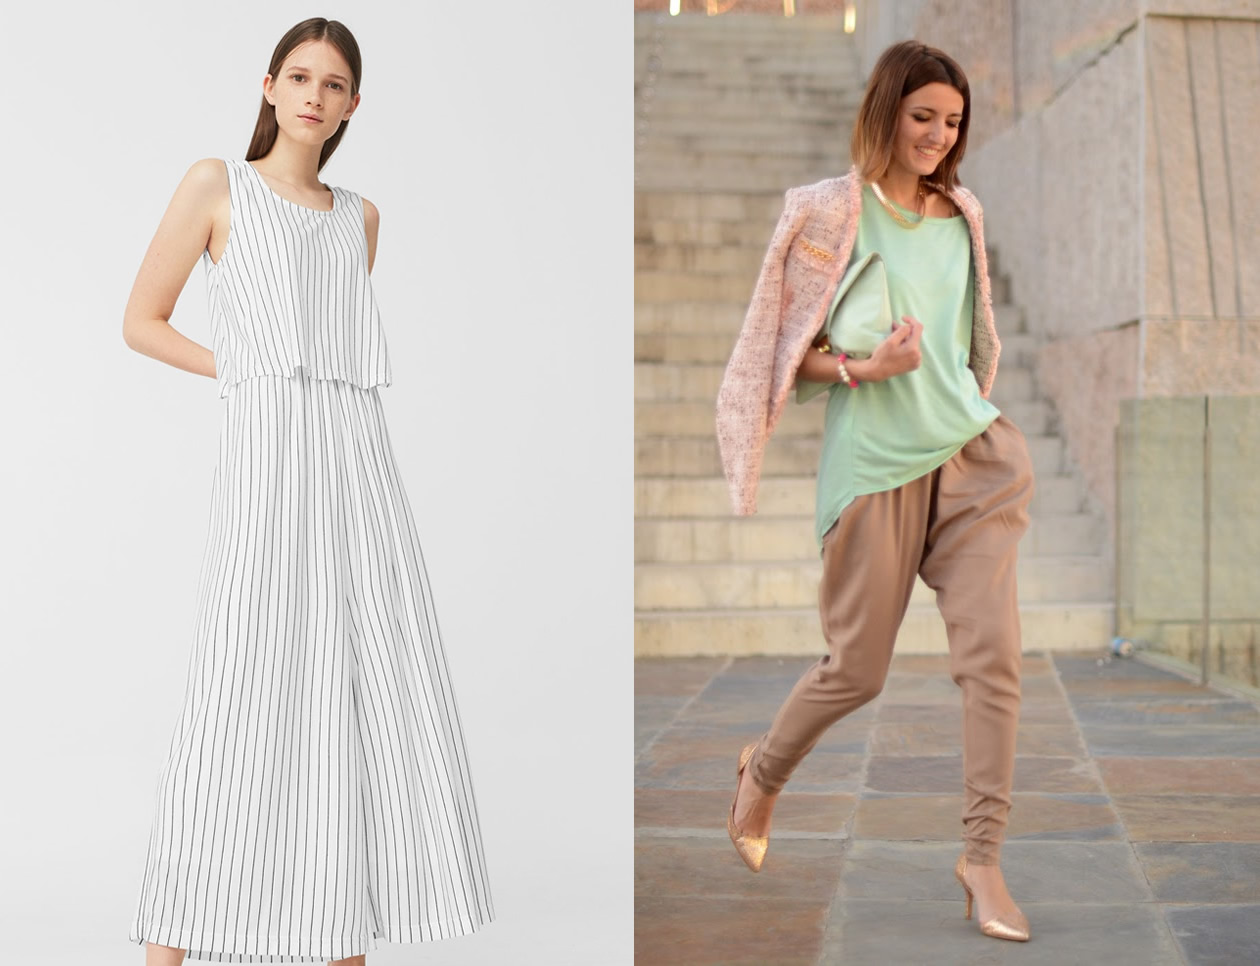 High Quality 10 Best Wedding Guest Trousers Outfit Ideas For Women